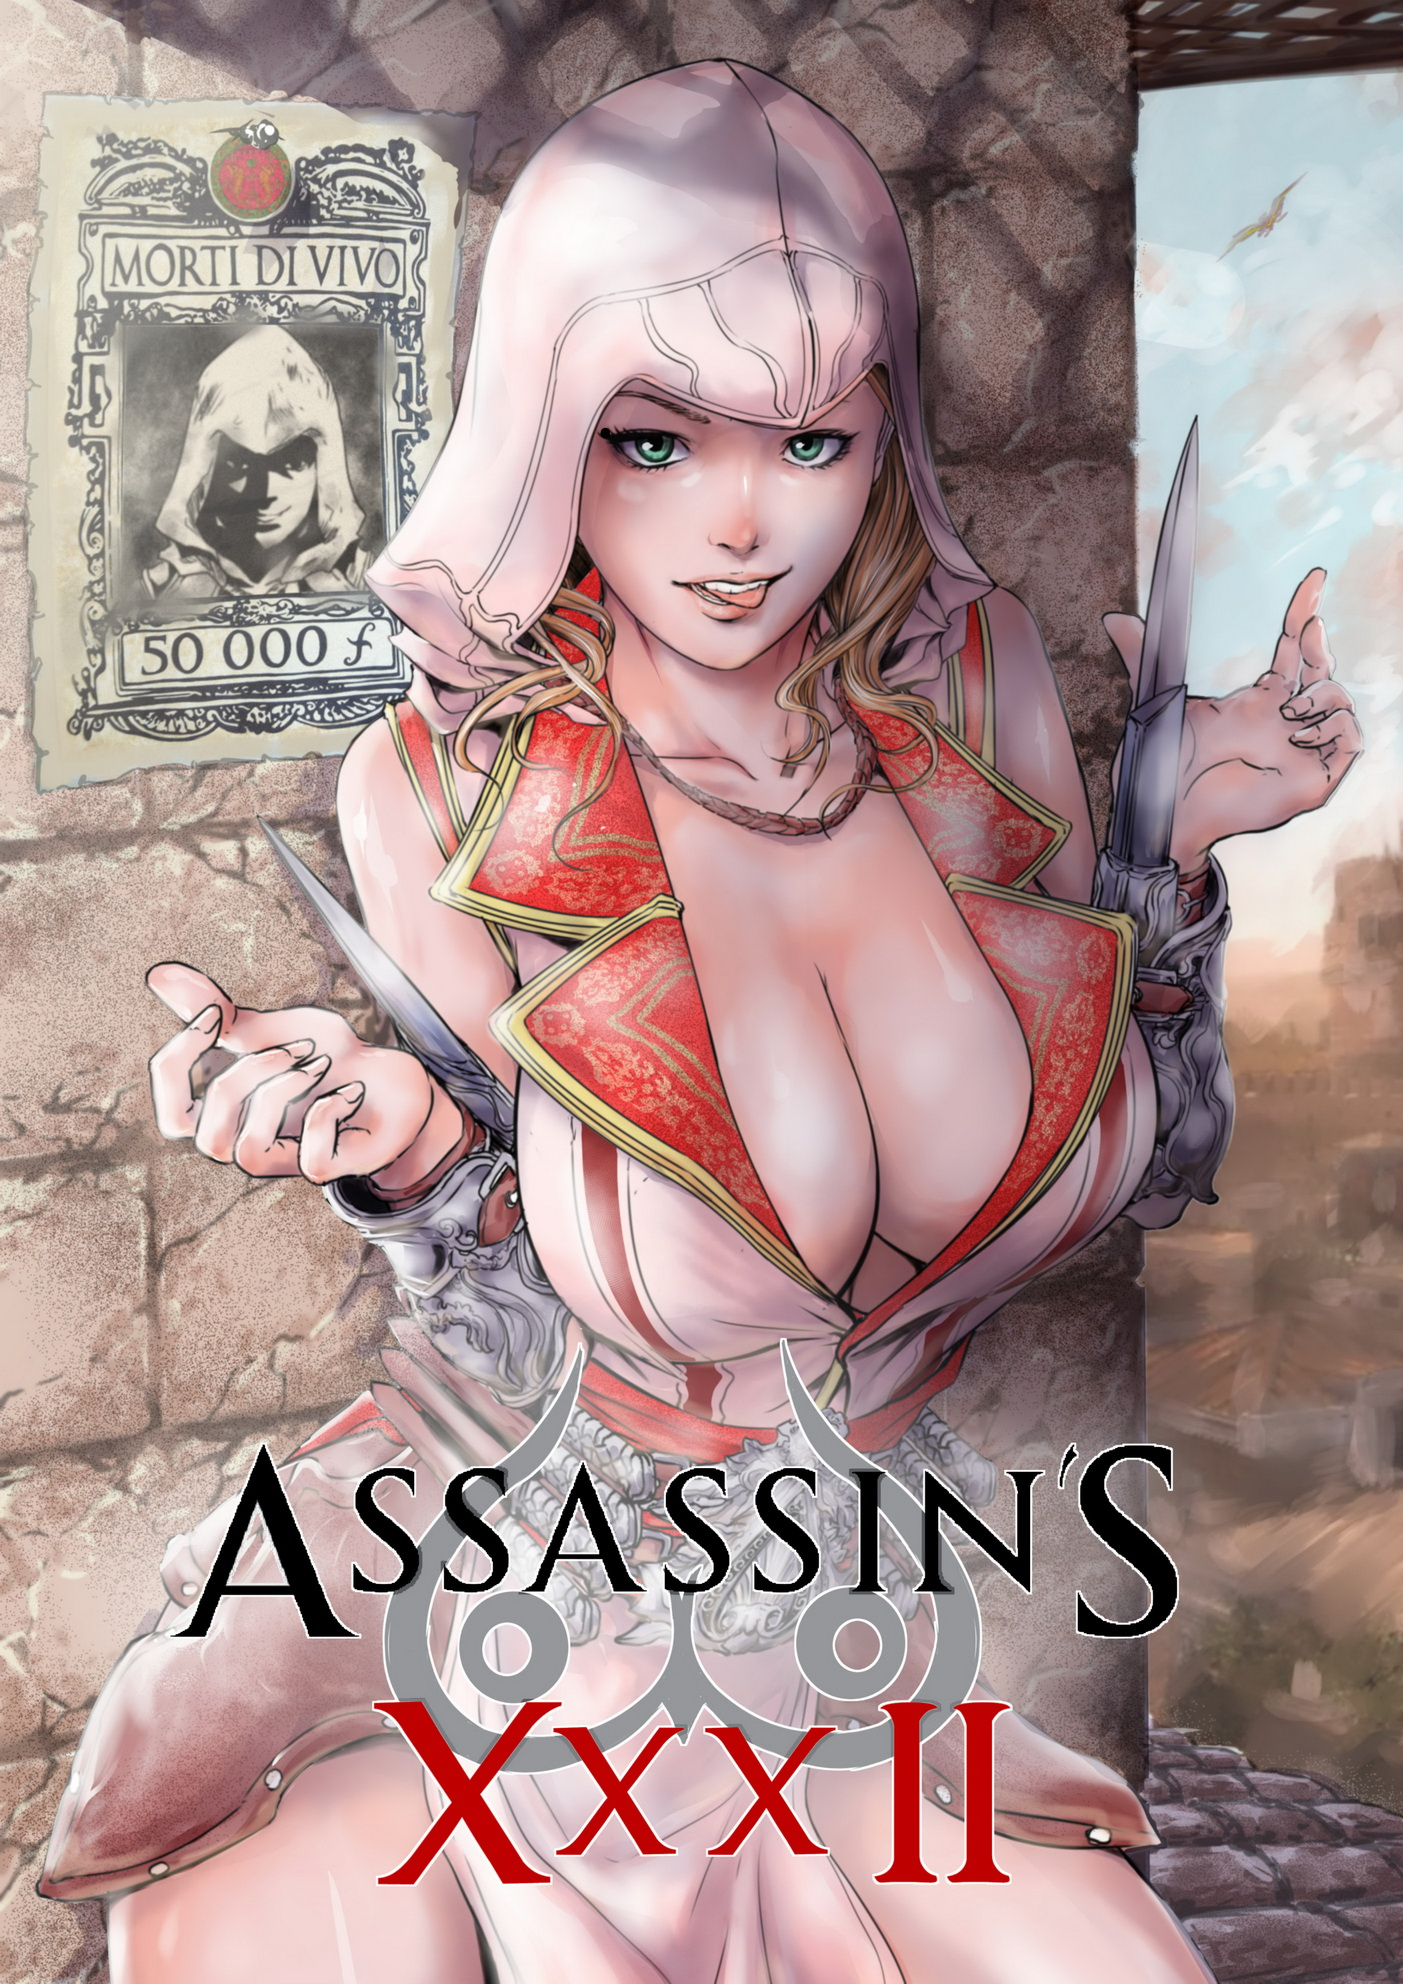 Hentai porn de assassin s creed ii exposed comic